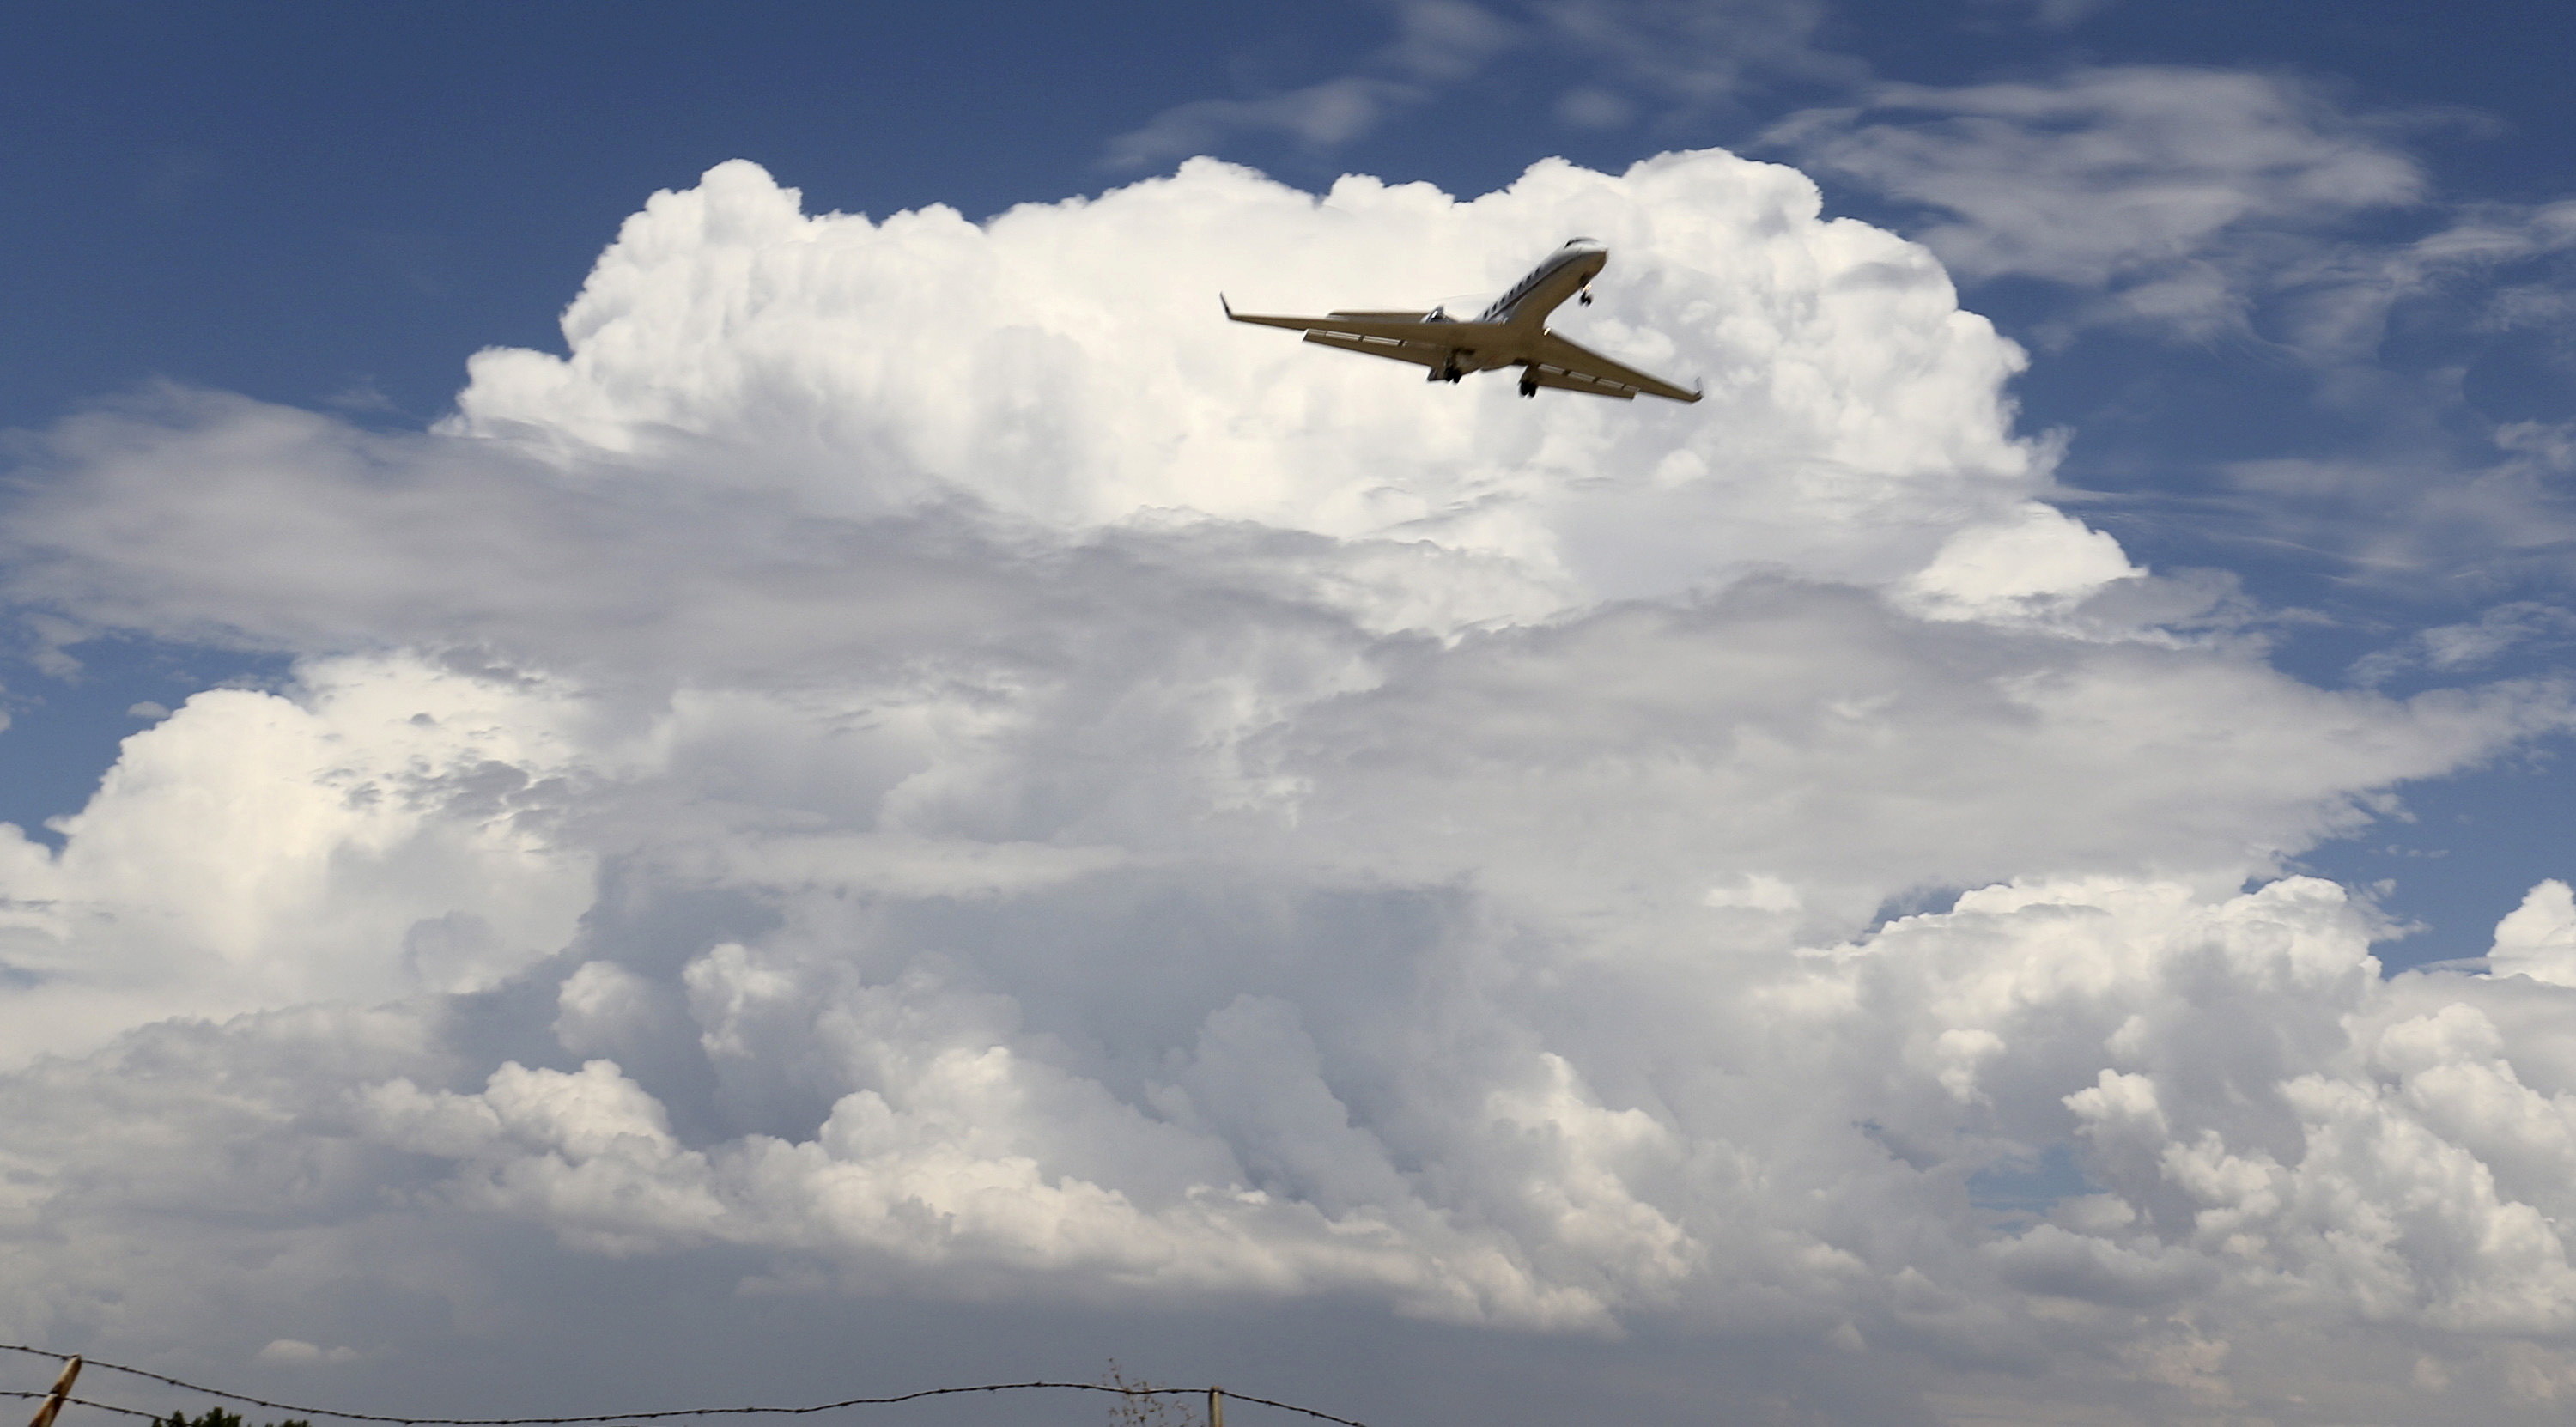 A privet jet comes in for a landing at the Van Nuys airport in the high desert area of Los Angeles County, California July 30, 2015. REUTERS/Gene Blevins